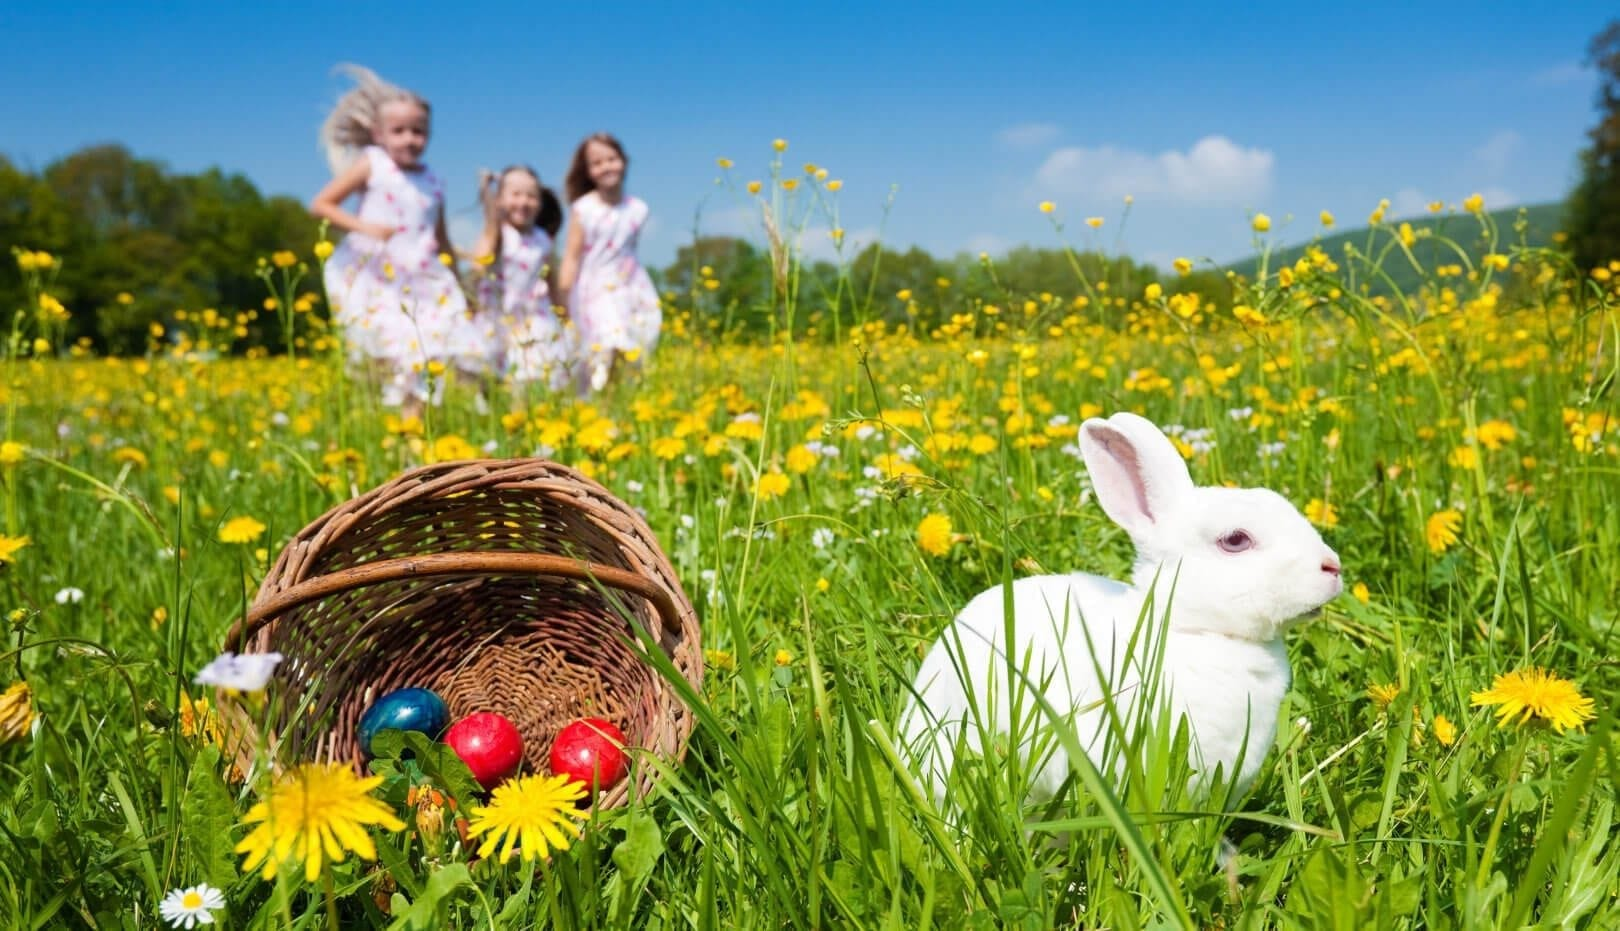 de4663eb8 The Best Easter Events for NJ Families - Best of NJ Easter Guide